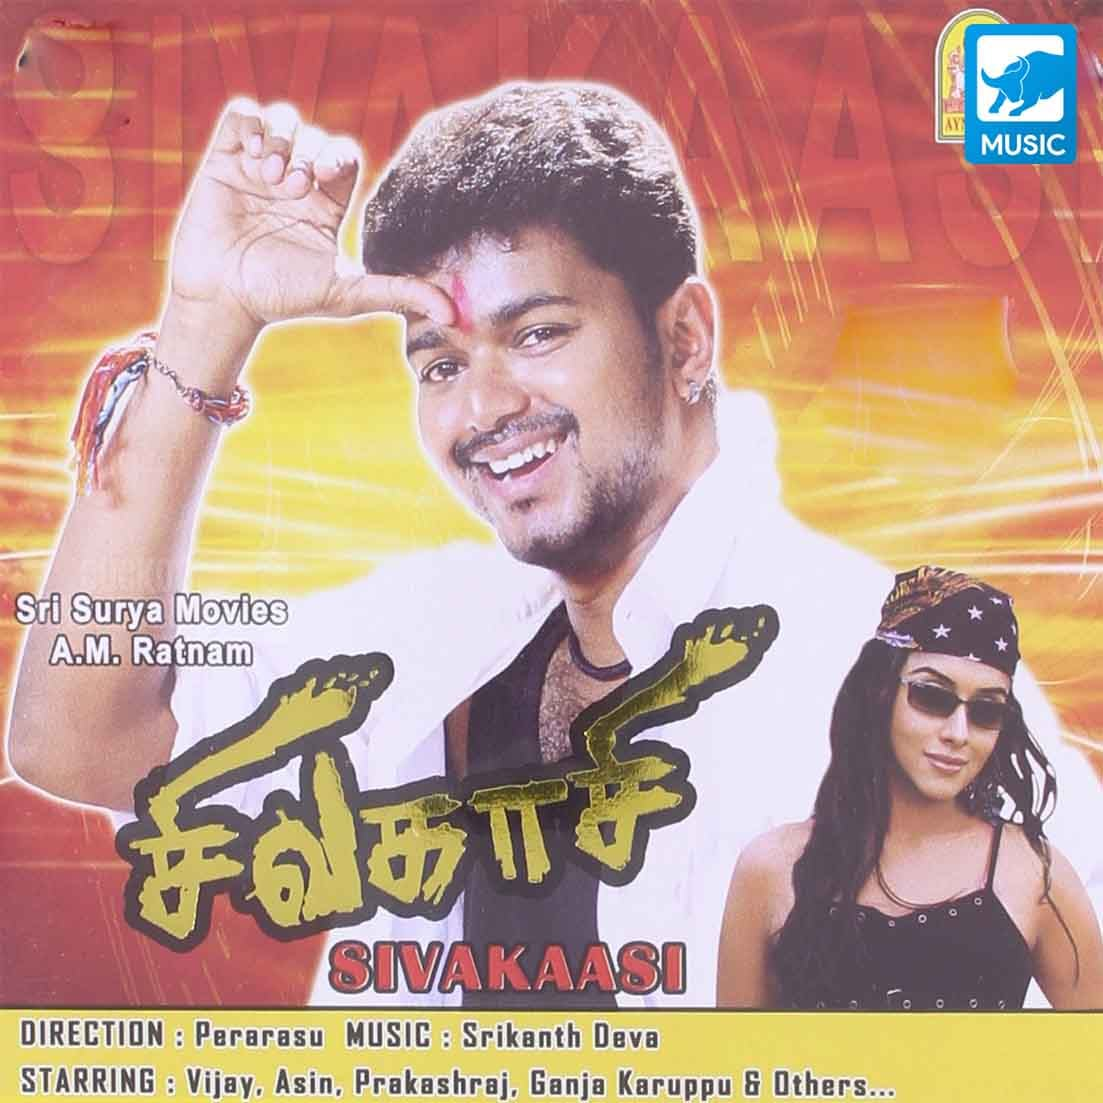 Sivakasi thalapathy vijay Movie